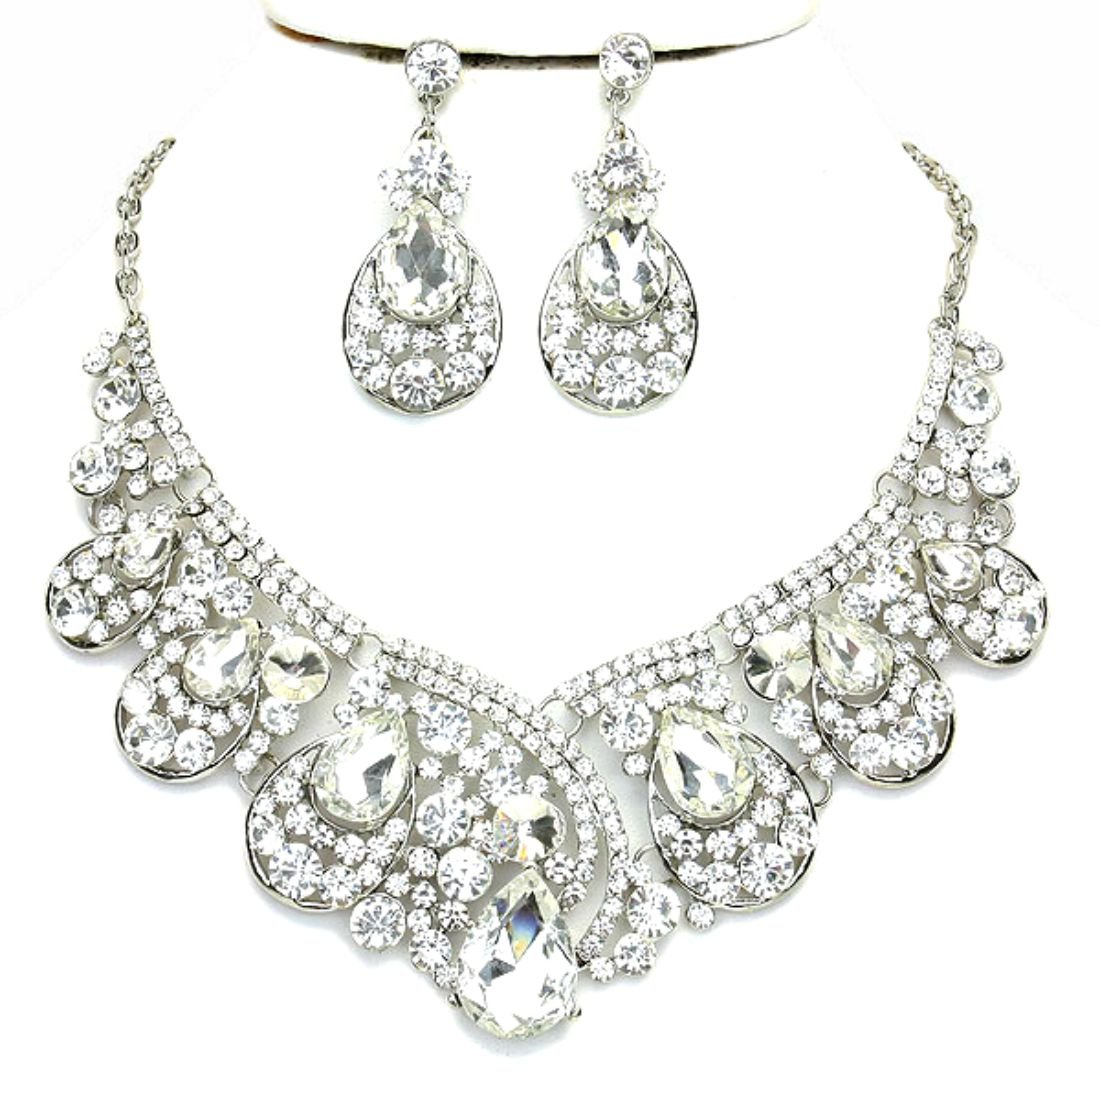 Women's Chunky Clear Crystal Statement Silver Chain Necklace Earrings Set Prom Bridal Pageant Jewelry by Design, fashion jewelry